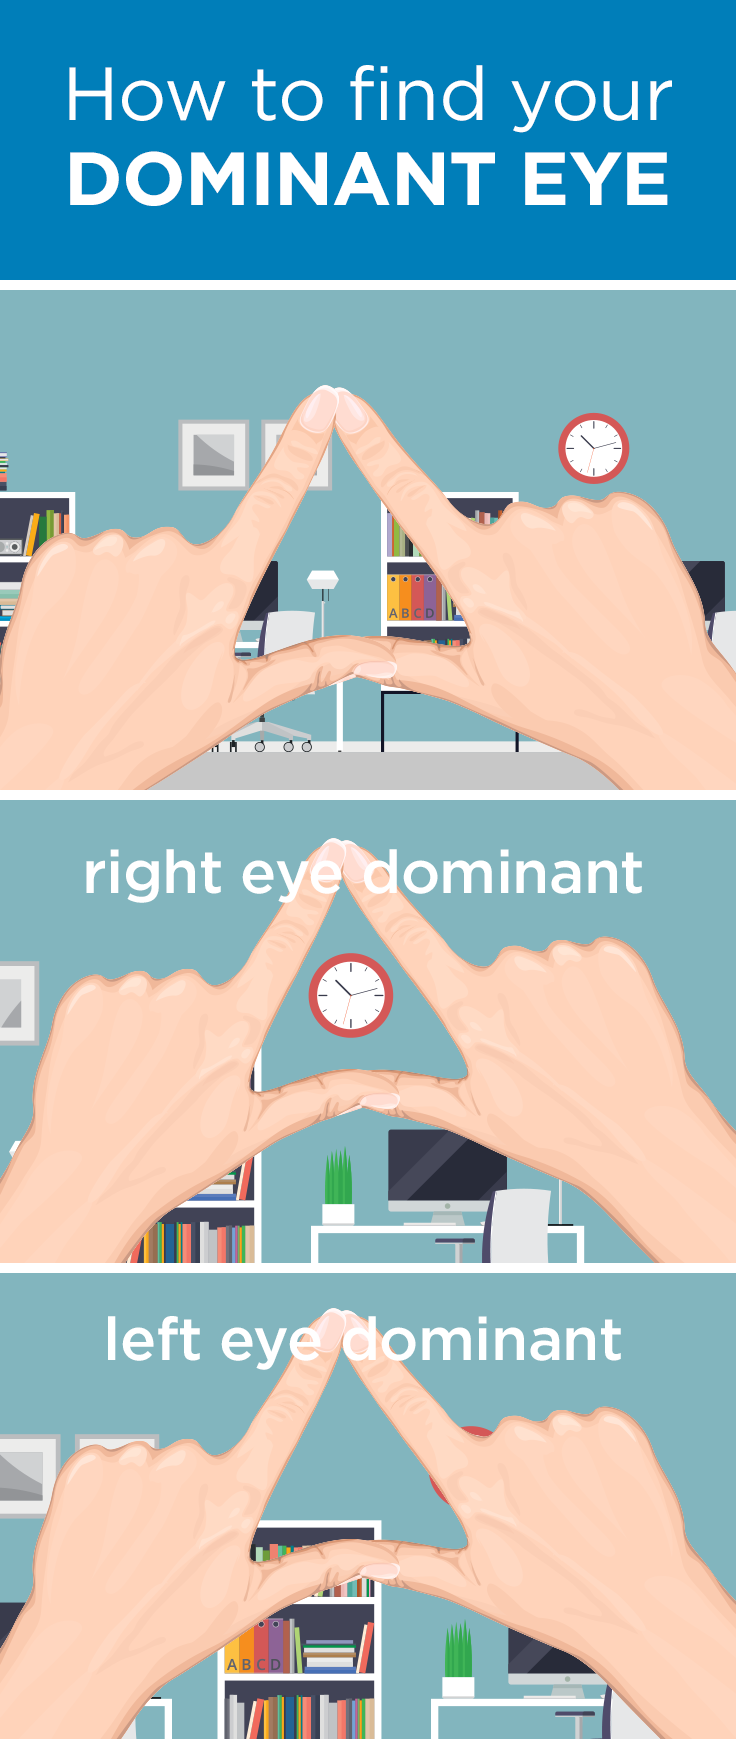 FINDING DOMINANT EYE